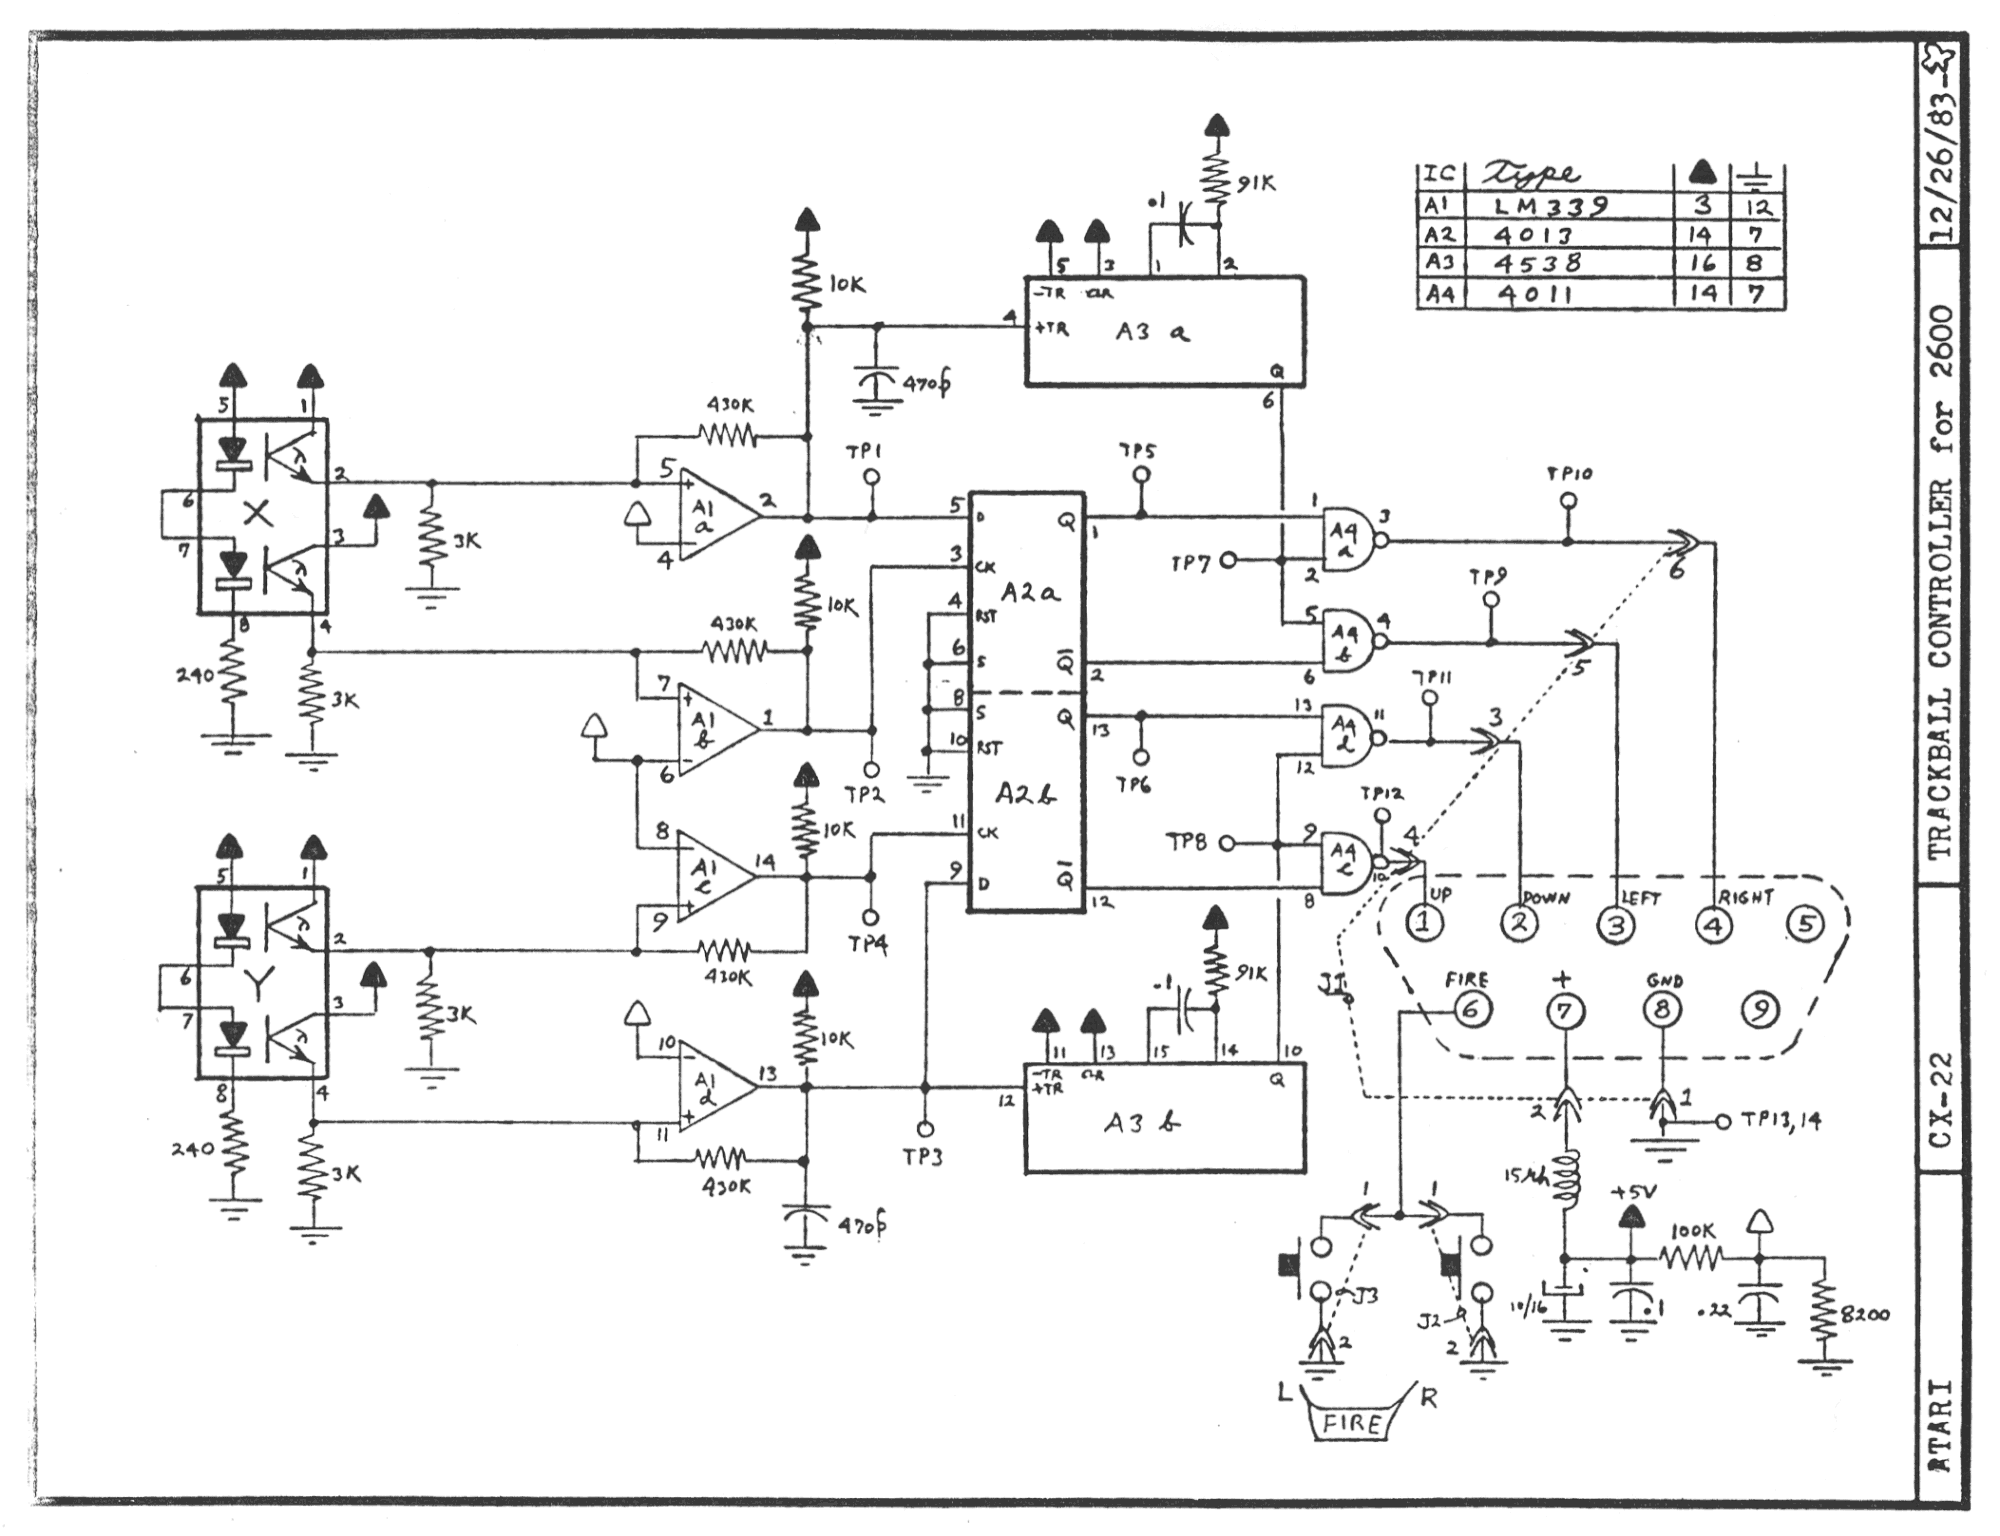 Schematic_Atari2600_CX22_2000 atari 2600 controller schematic the atari joystick pinout common Atari 2600 System at mifinder.co